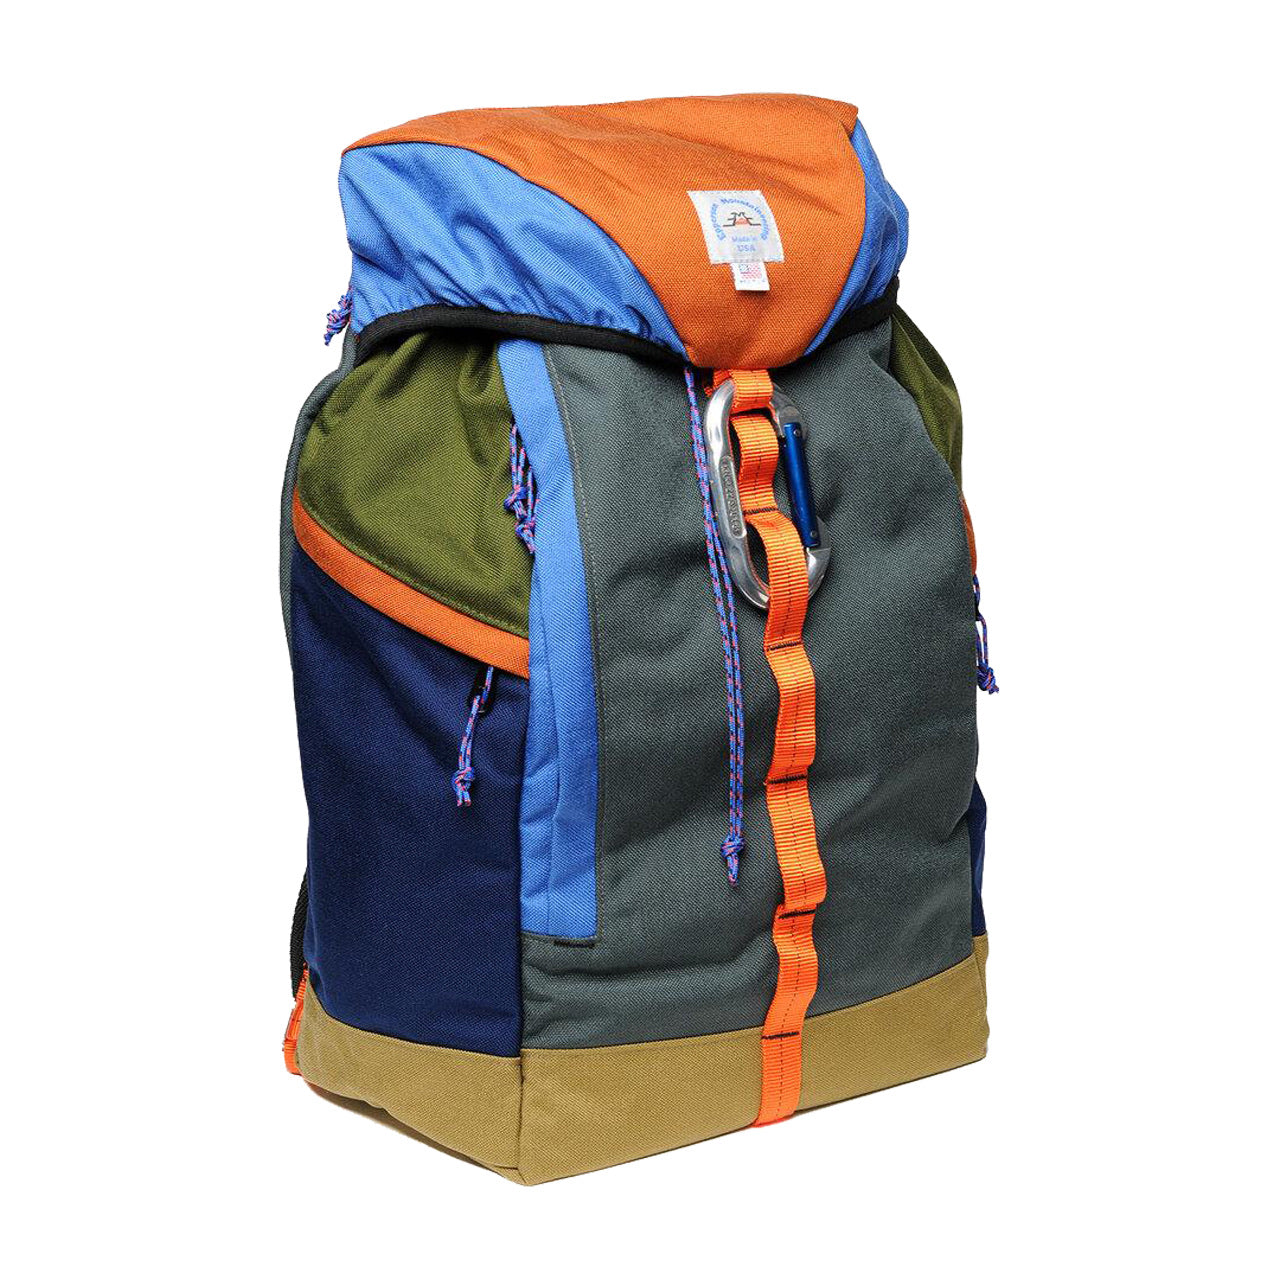 EPPERSON MOUNTAINEERING Large Climb Pack - CLAY/ STEEL